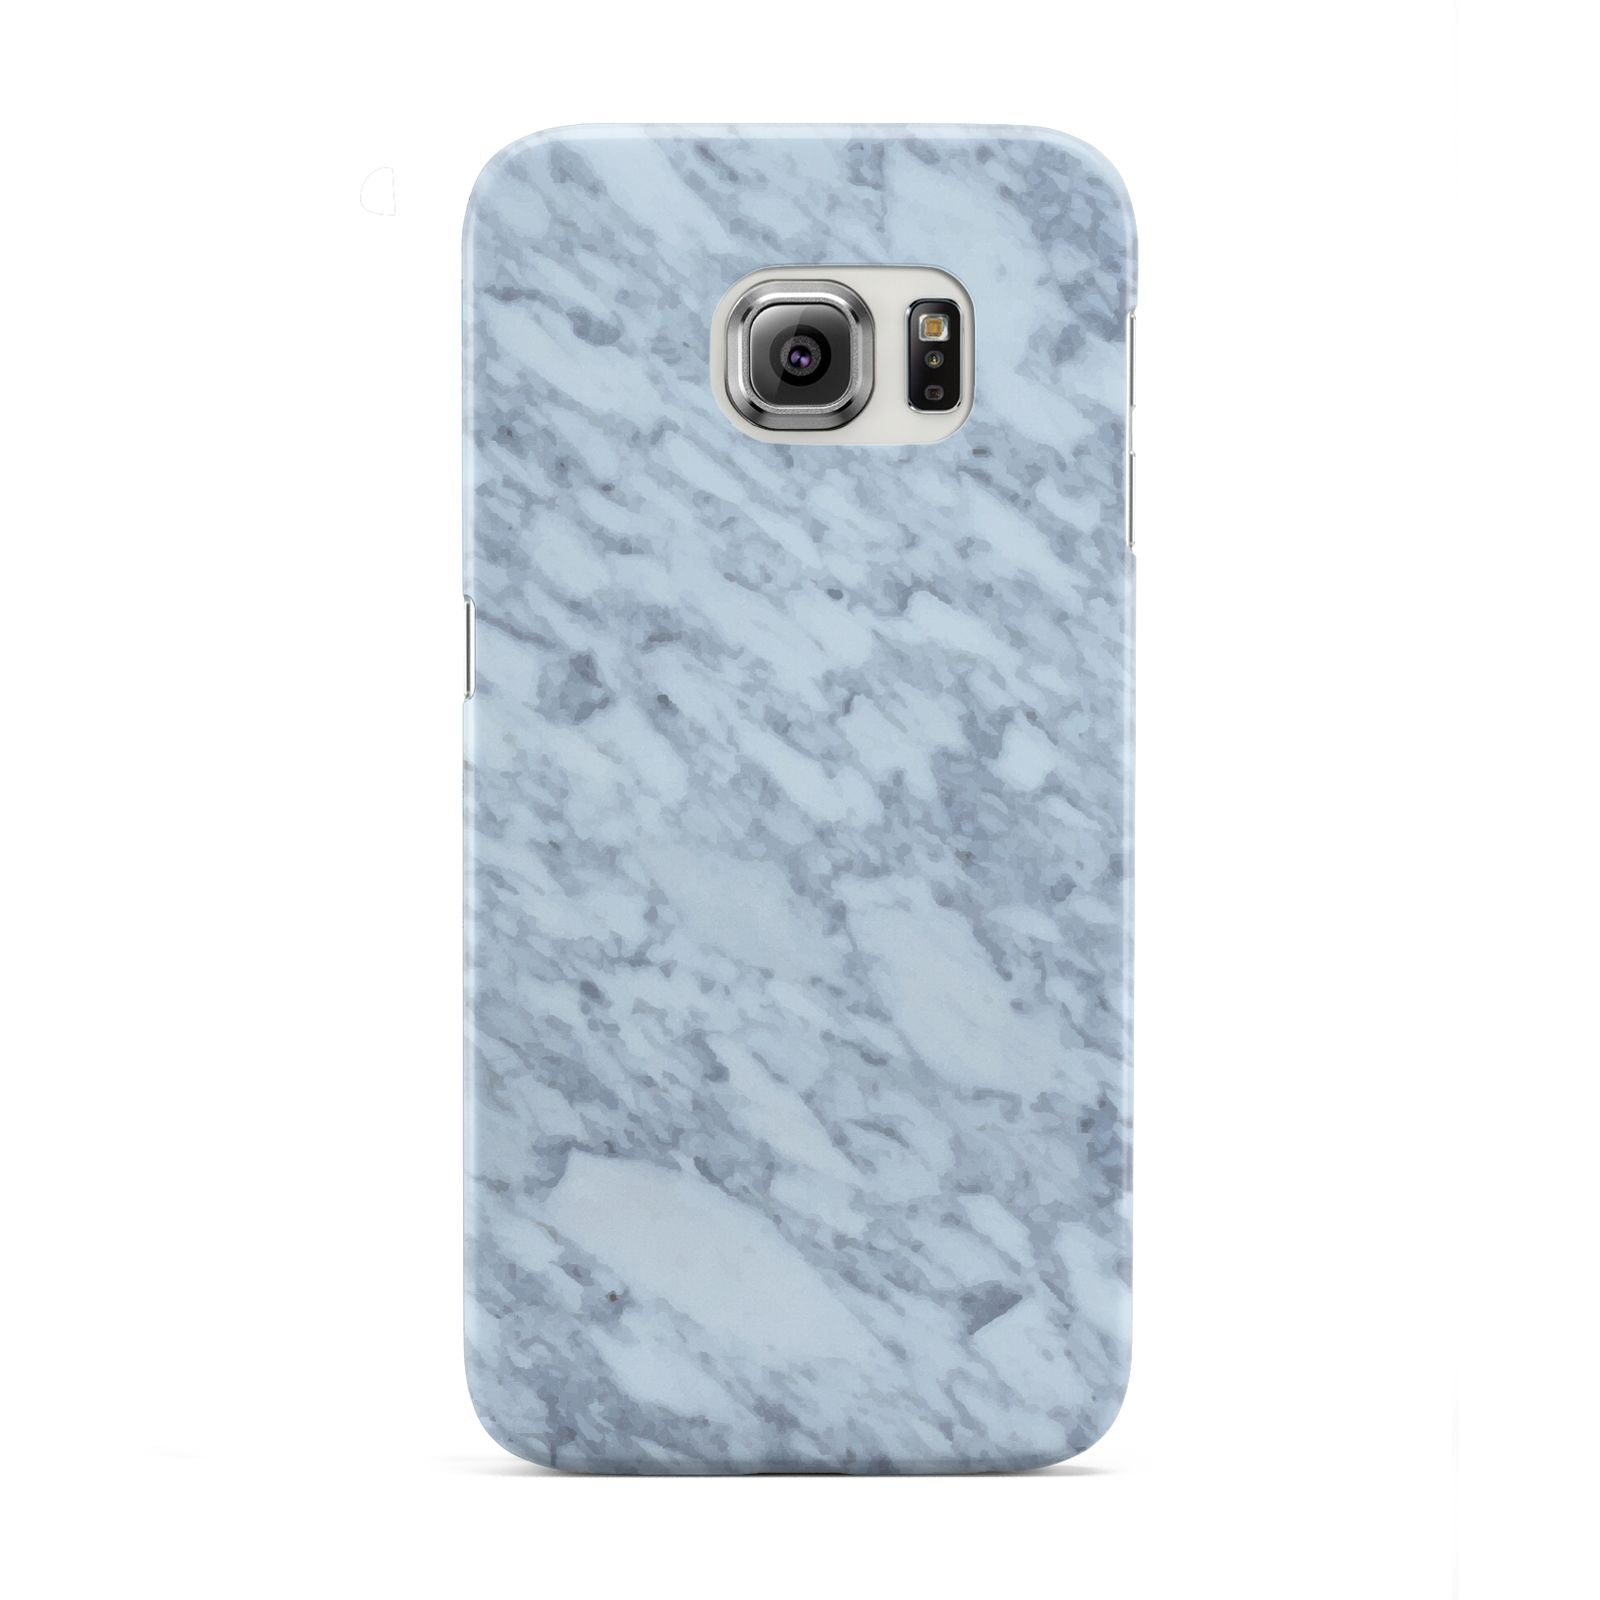 Faux Marble Grey 2 Samsung Galaxy S6 Edge Case